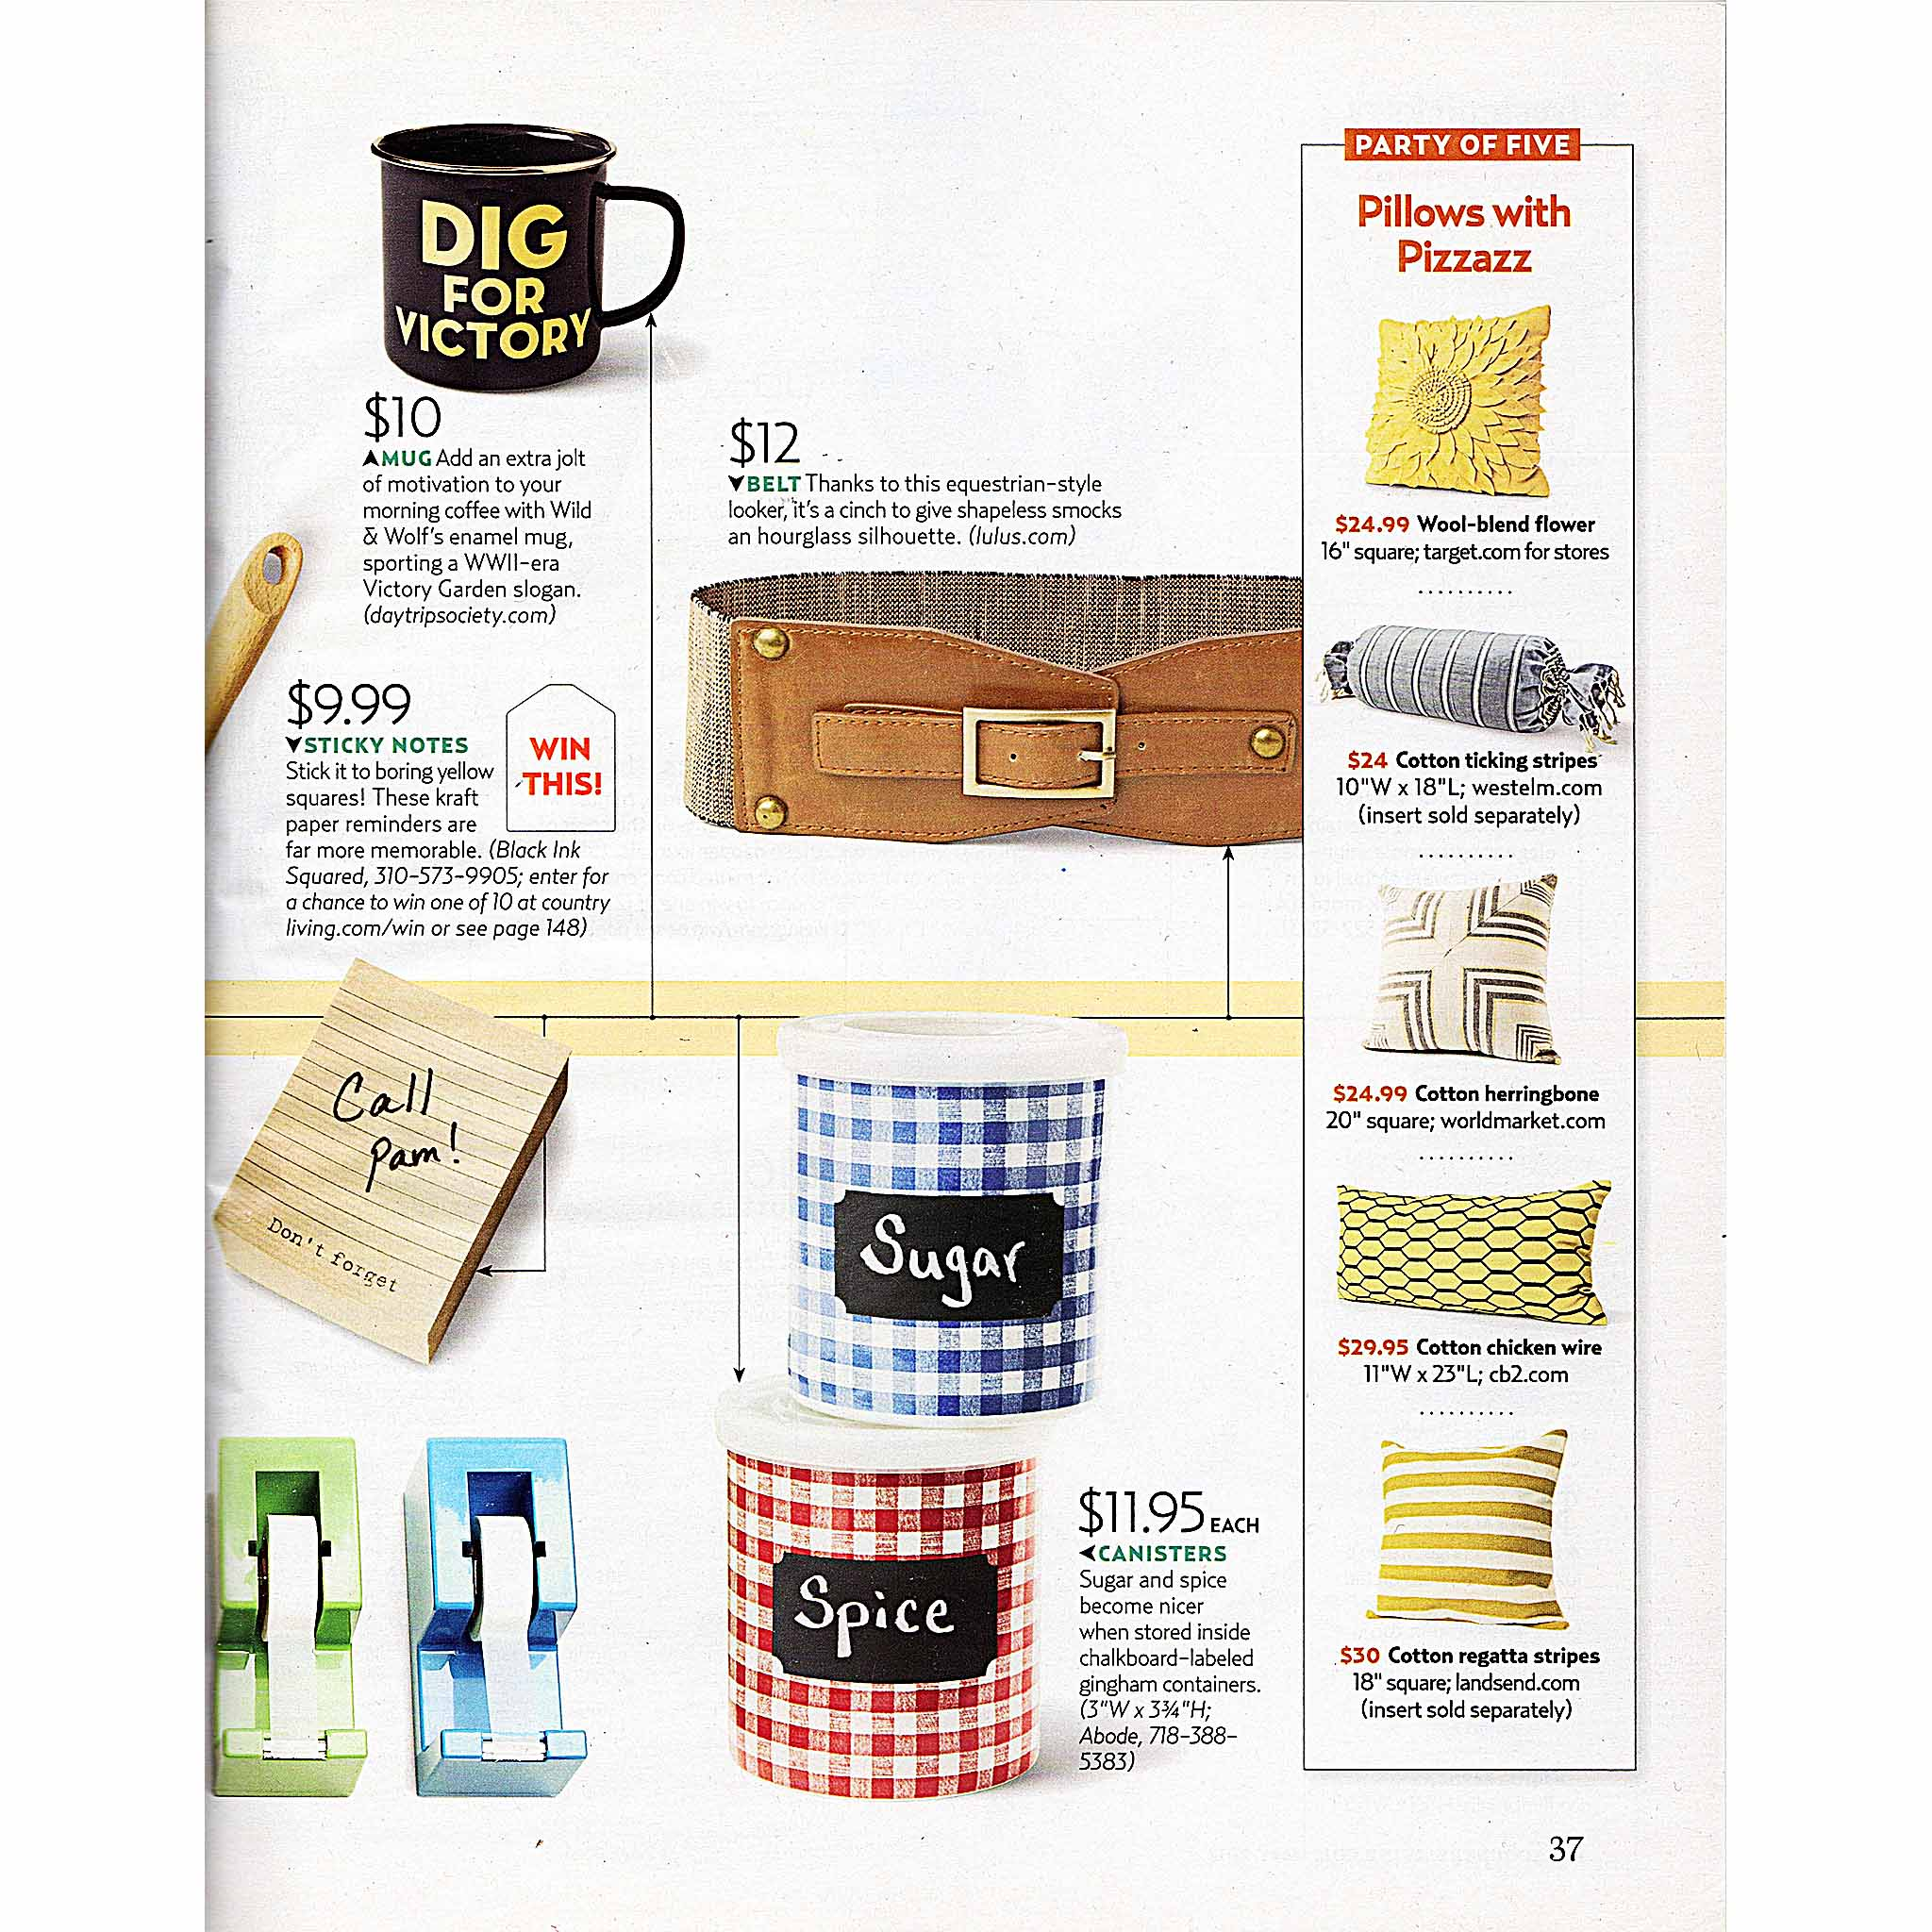 May 2012, Country Living Magazine. 50 Finds Under $50 The price of entry for this shopping roundup? A jaw-droppingly low $2.50.